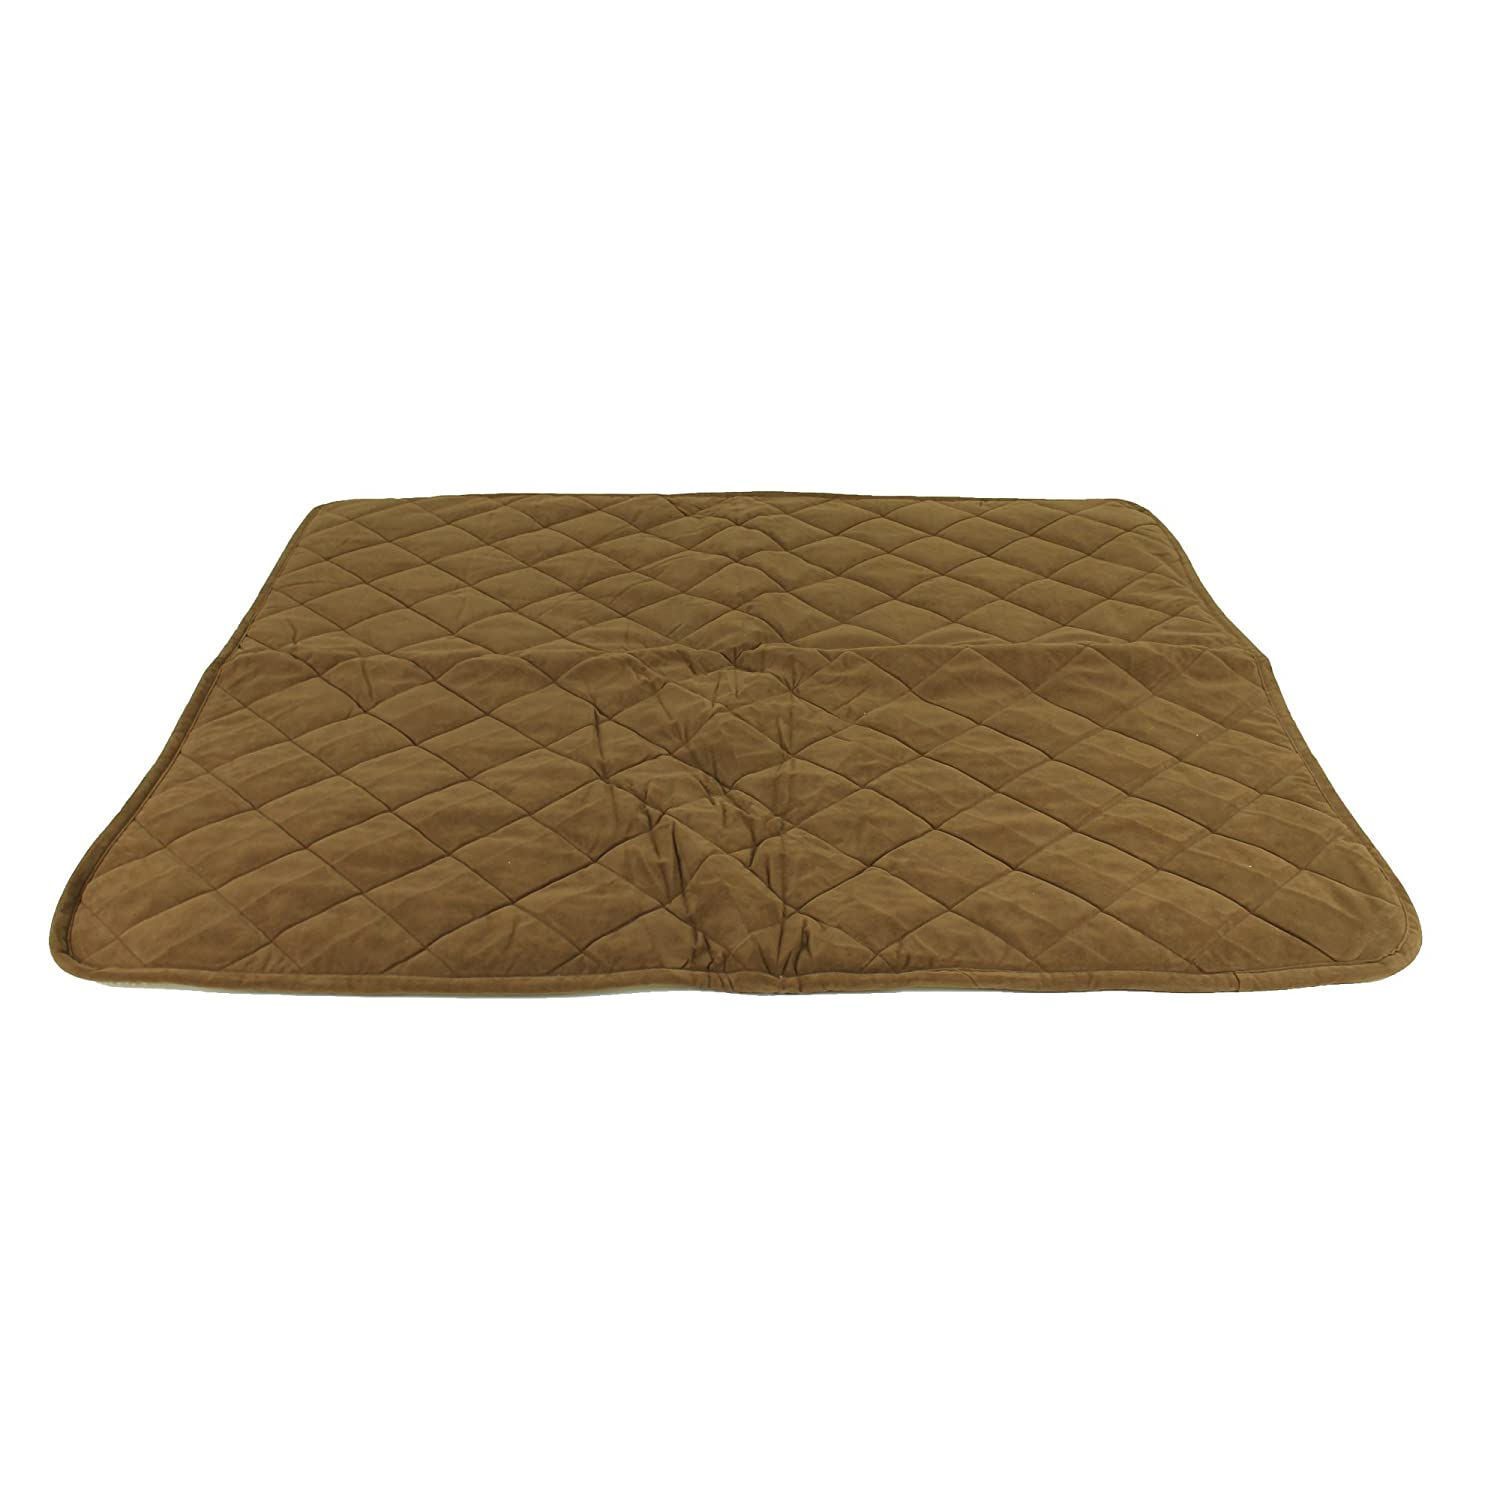 CPC Reversible Sherpa Quilted Microfiber Throw for Pets, 48-Inch, Chocolate